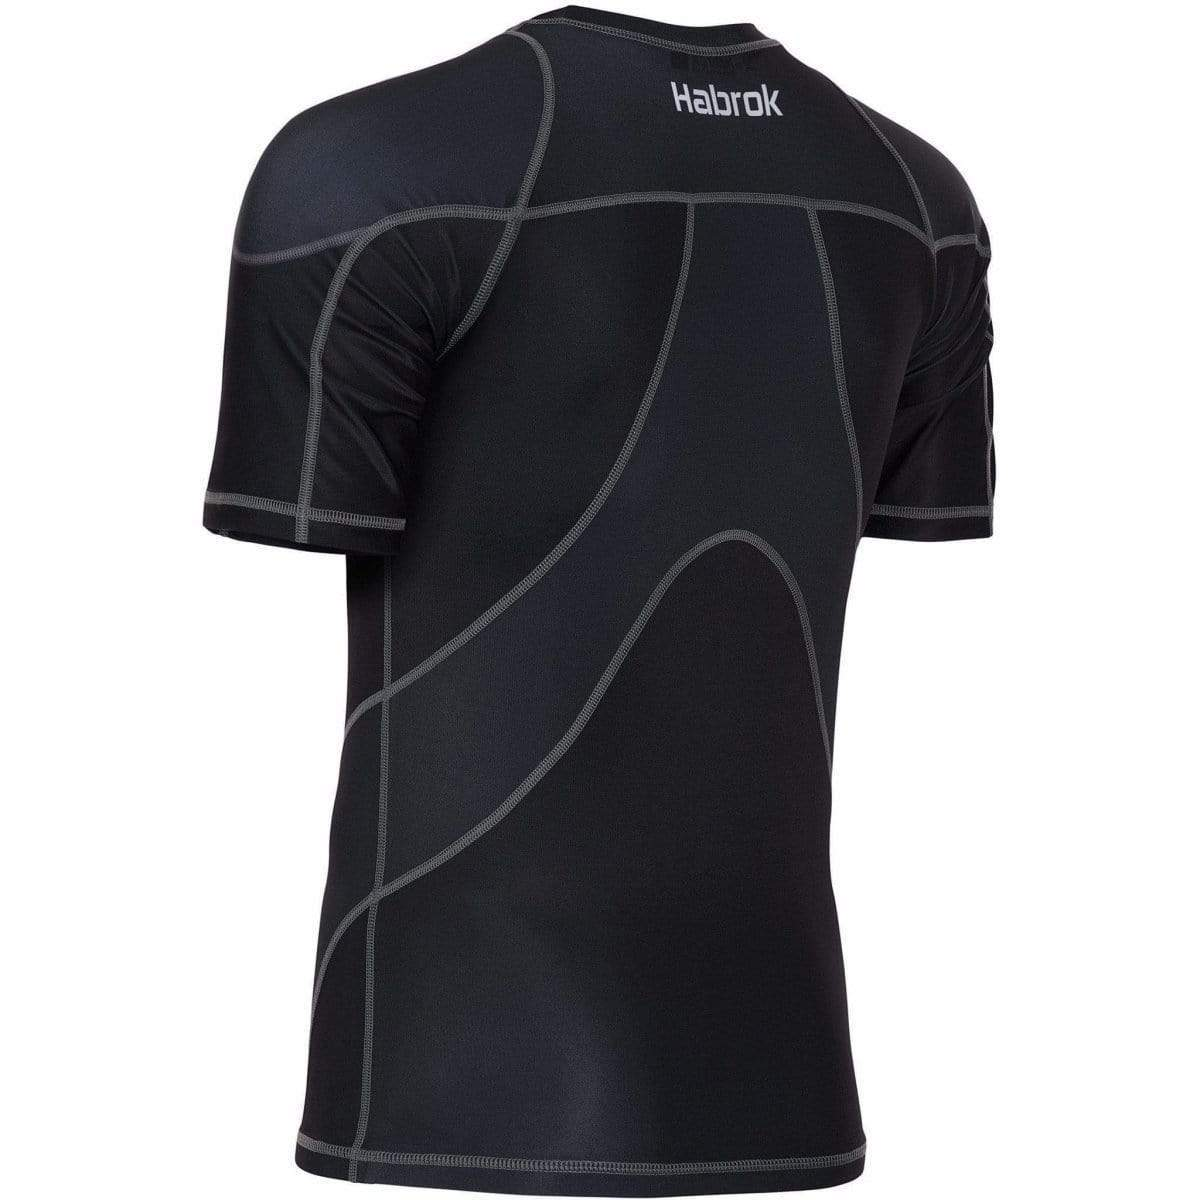 Habrok Rash Guard Pugnator 2.0 | Rash Guard | Half Sleeve | Men | Black Pugnator | BJJ Rash Guard | Habrok